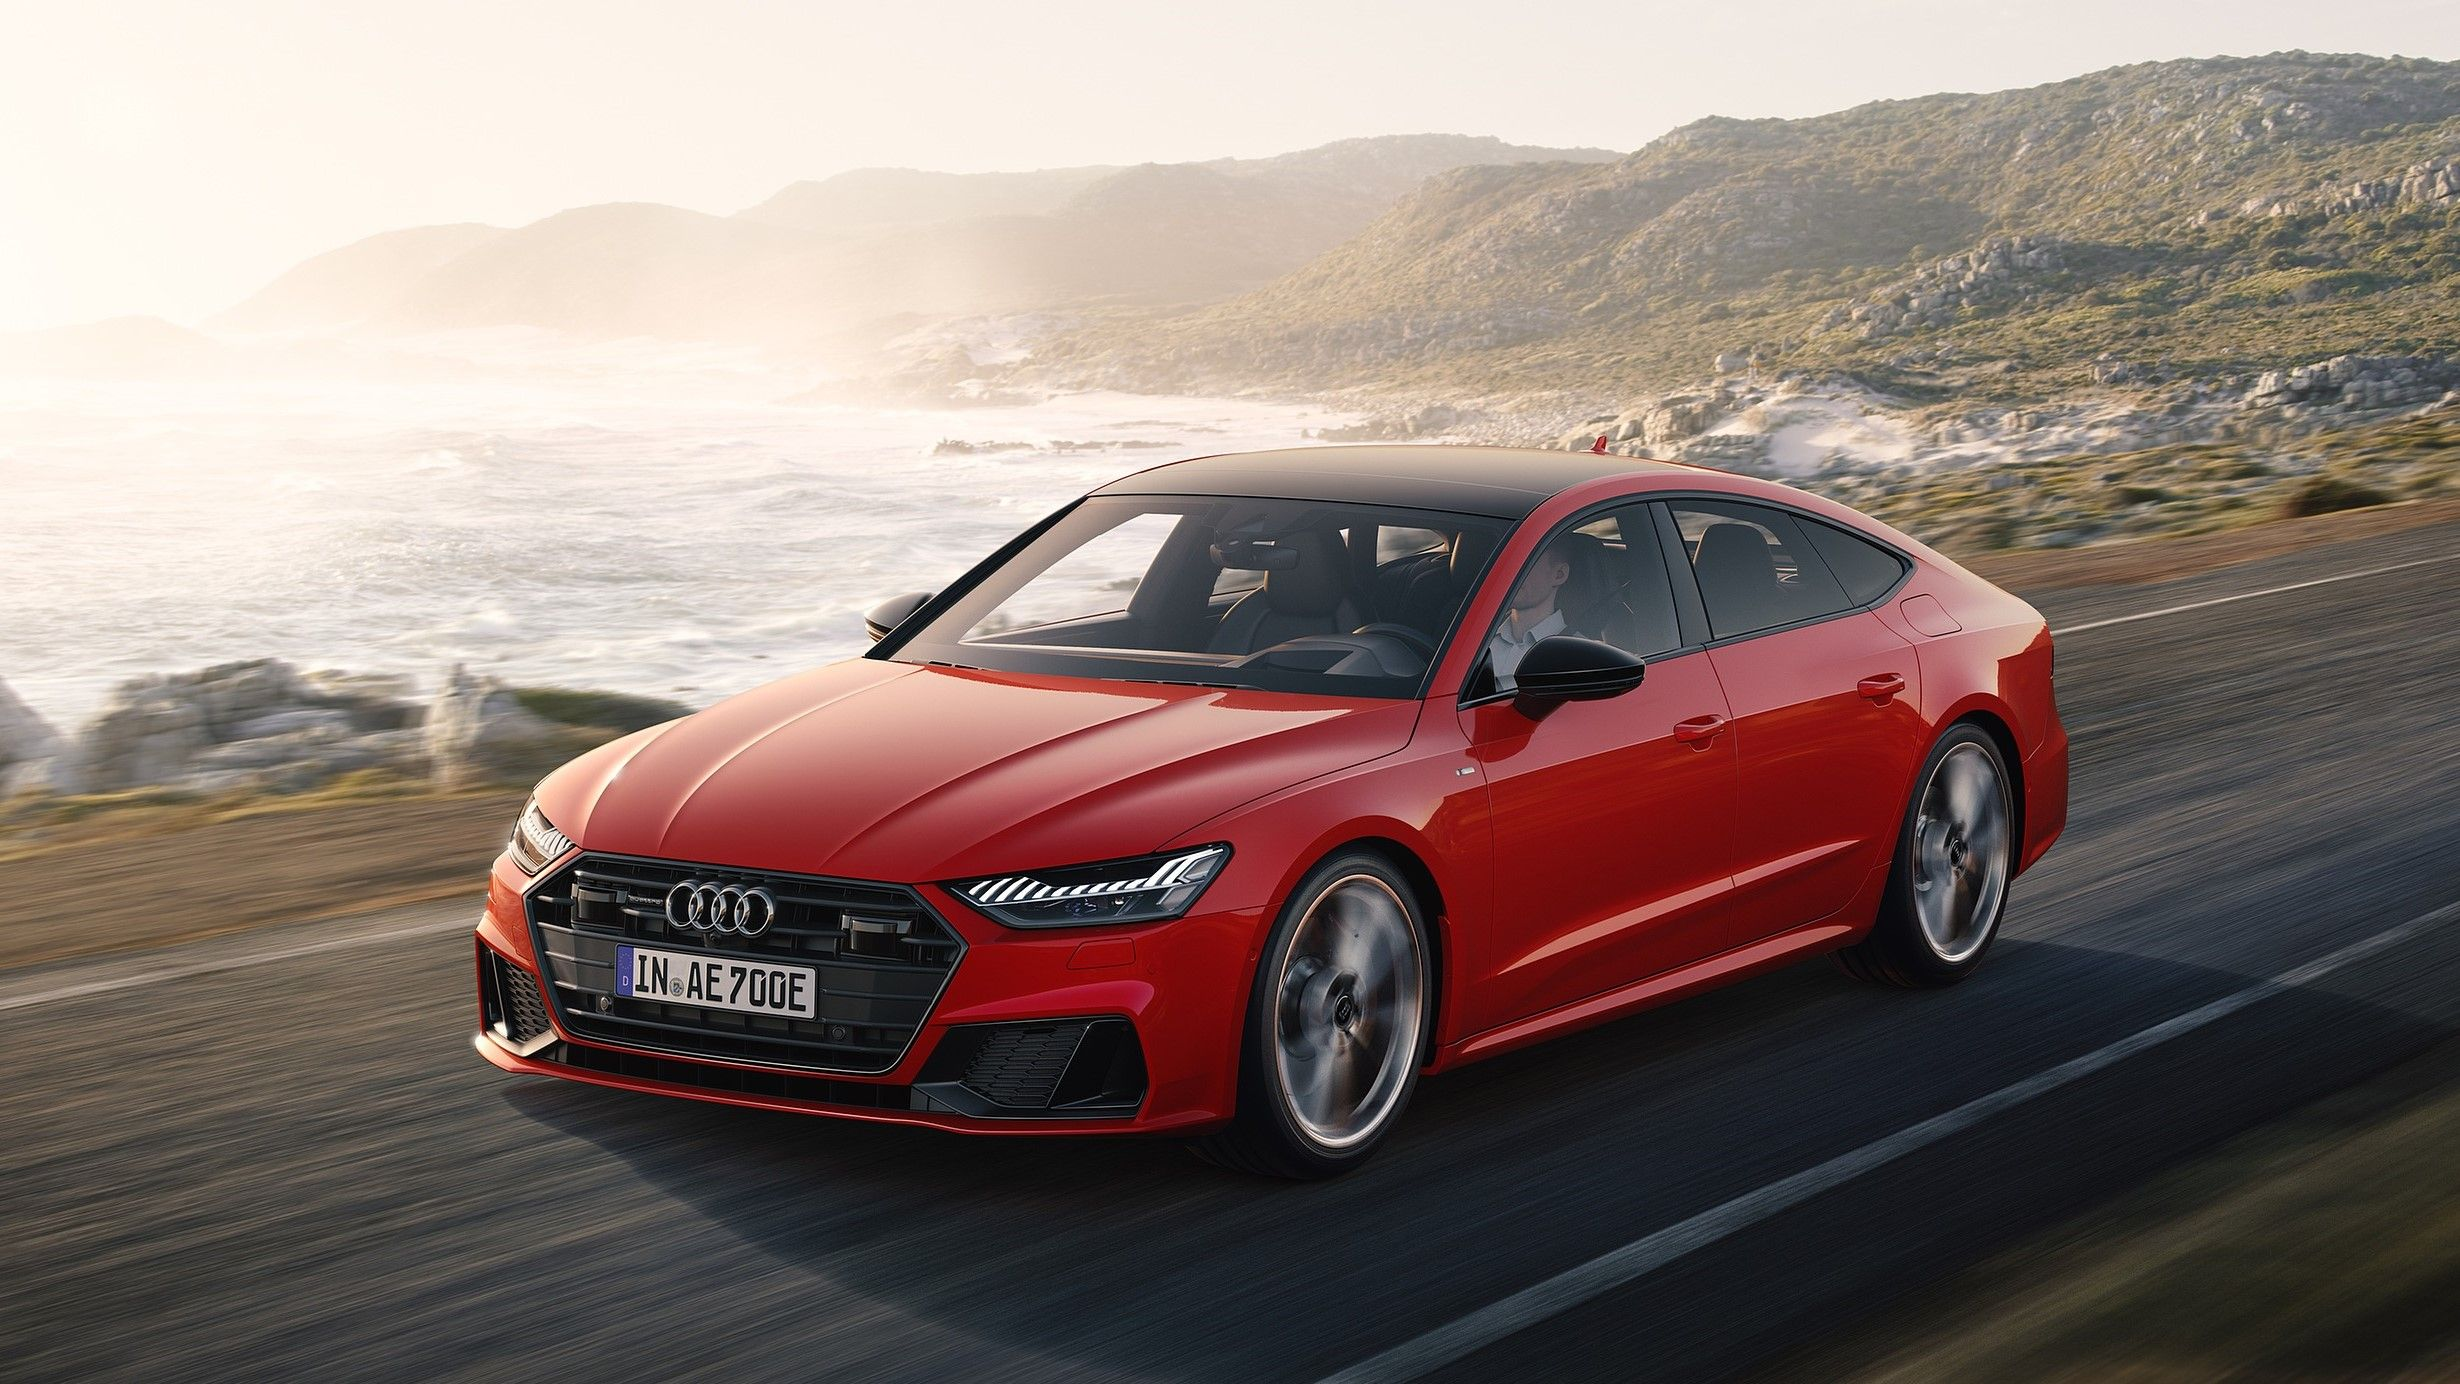 2021 Audi A7 Review Updates Release Date Trims Engine Interior And Rivals Comparison